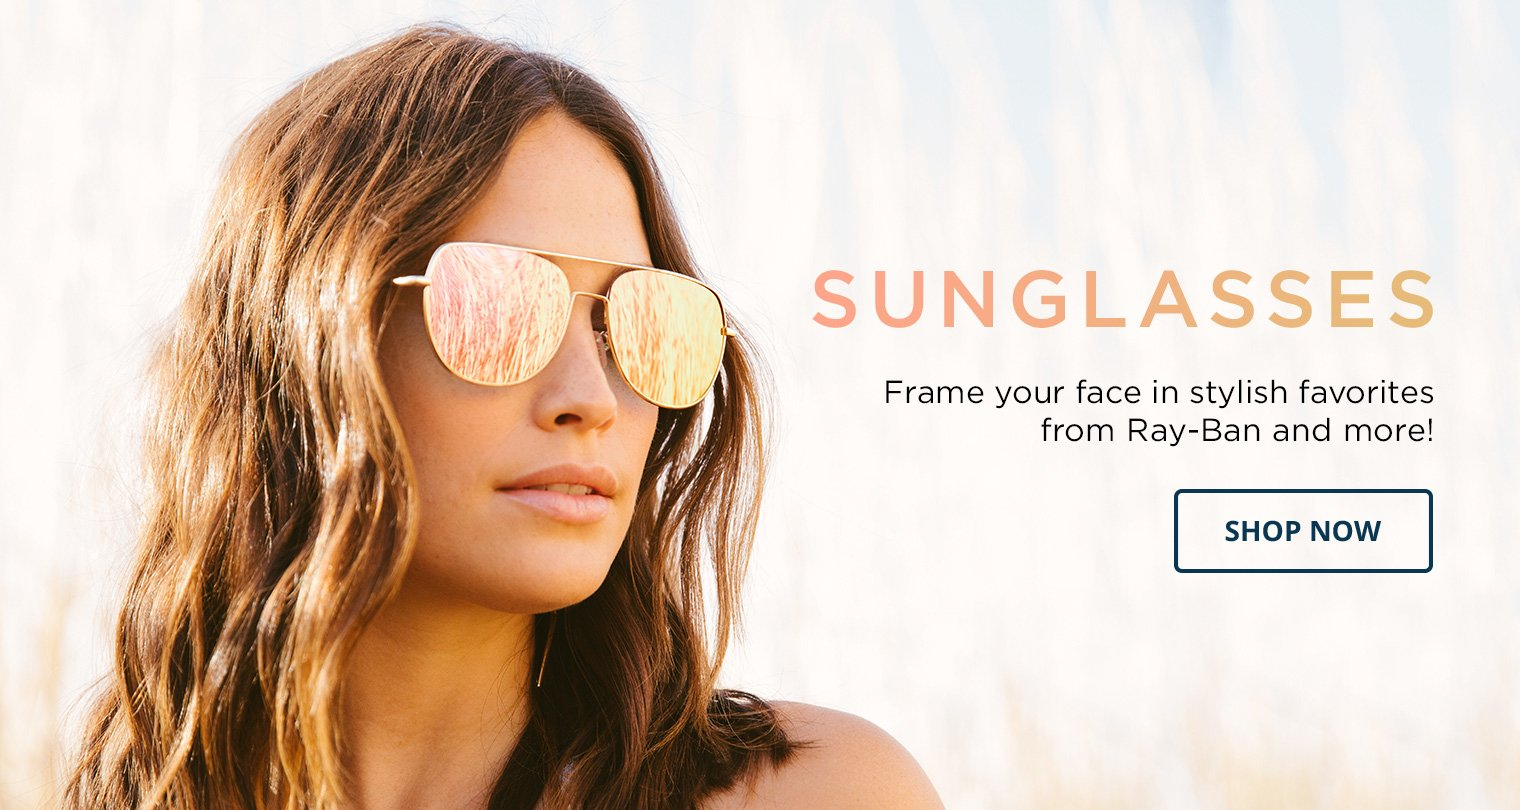 Sunglasses. Frame your face in stylish favorites from Ray-Ban and more! Shop Now.